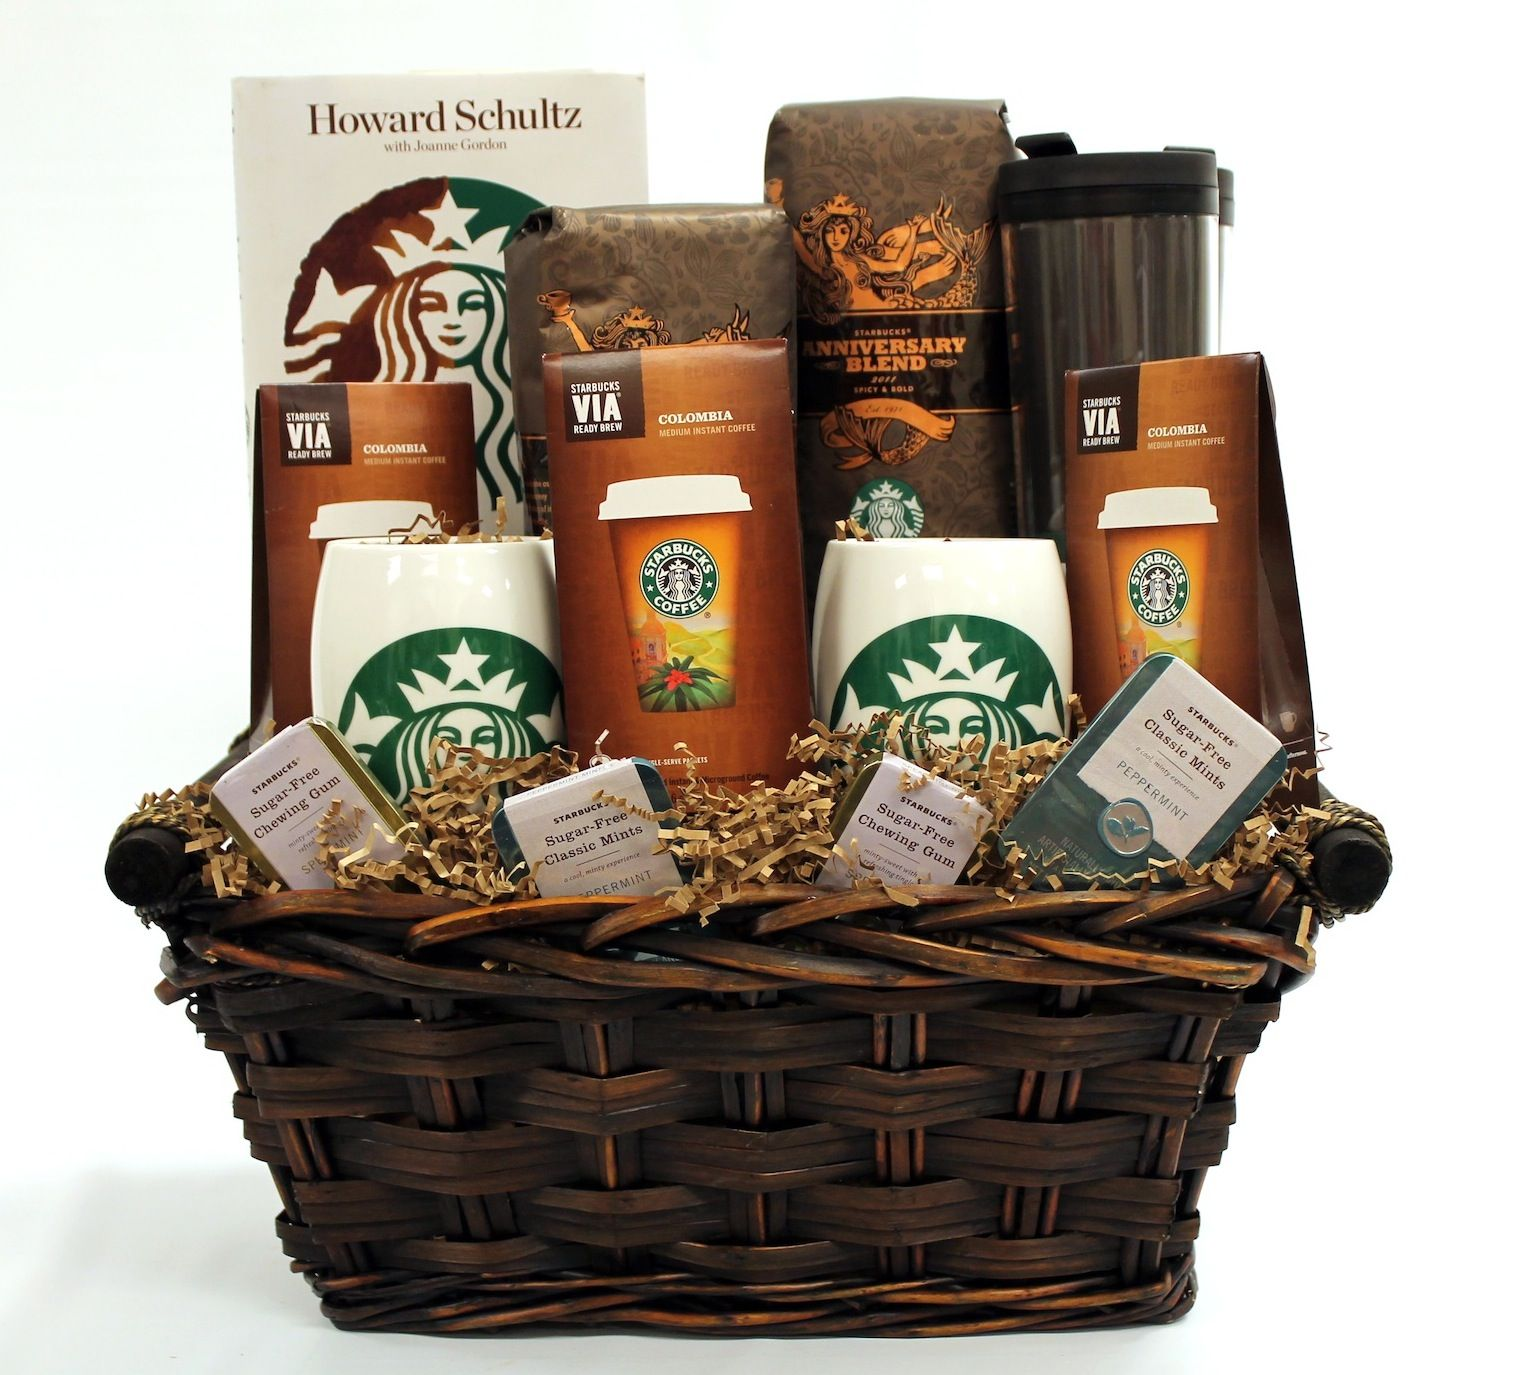 For the coffee enthusiast...a Starbucks gift basket!